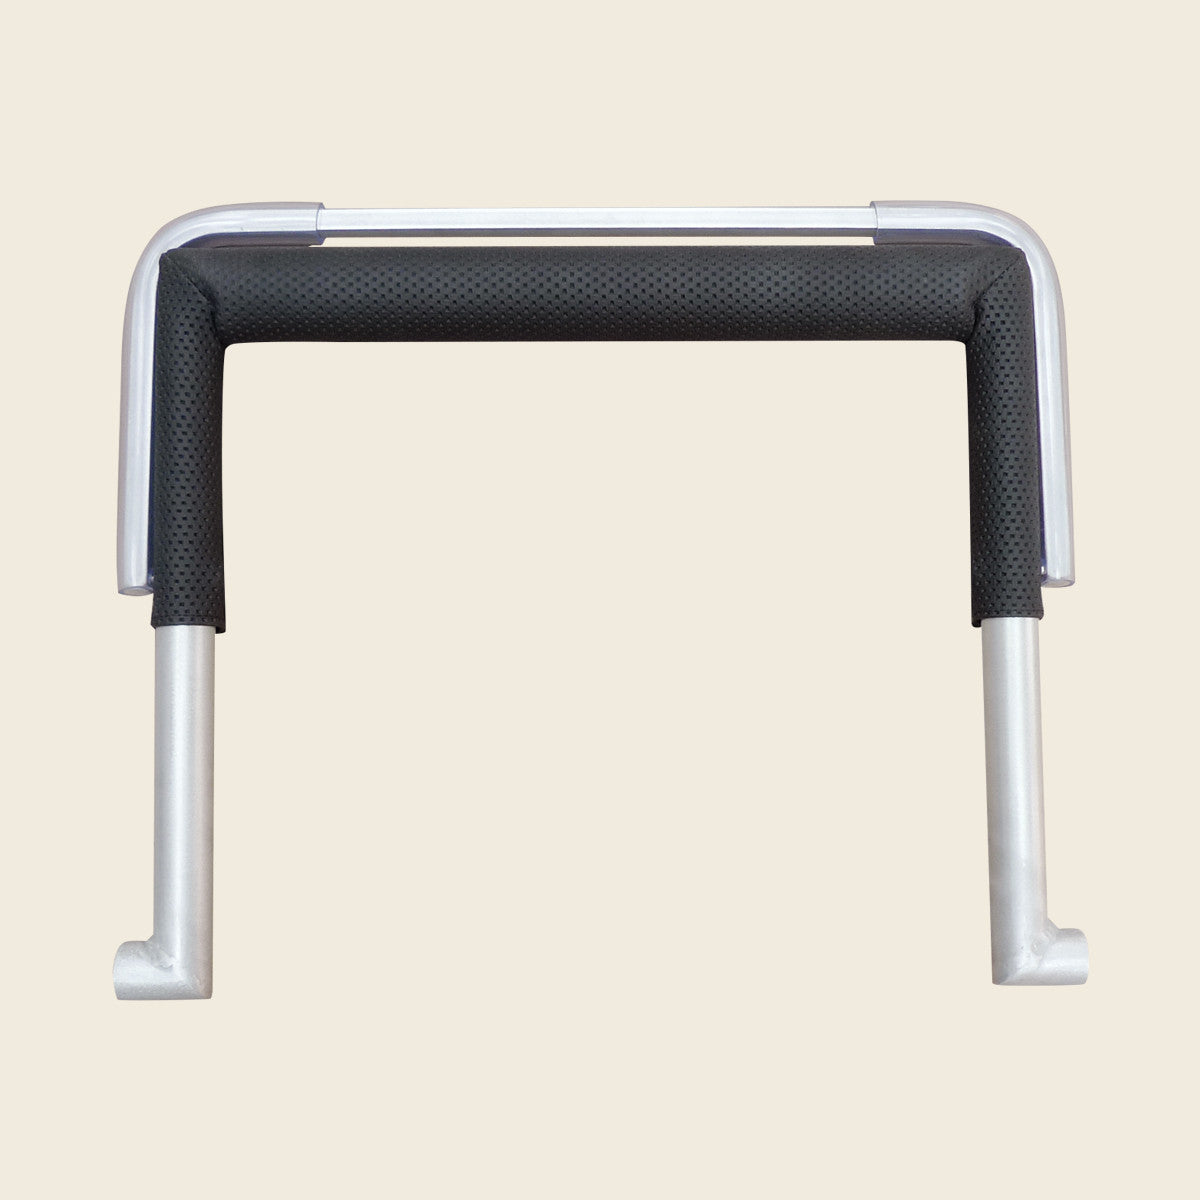 GRATZ PILATES REPLACEMENT FOOT BAR UNIT